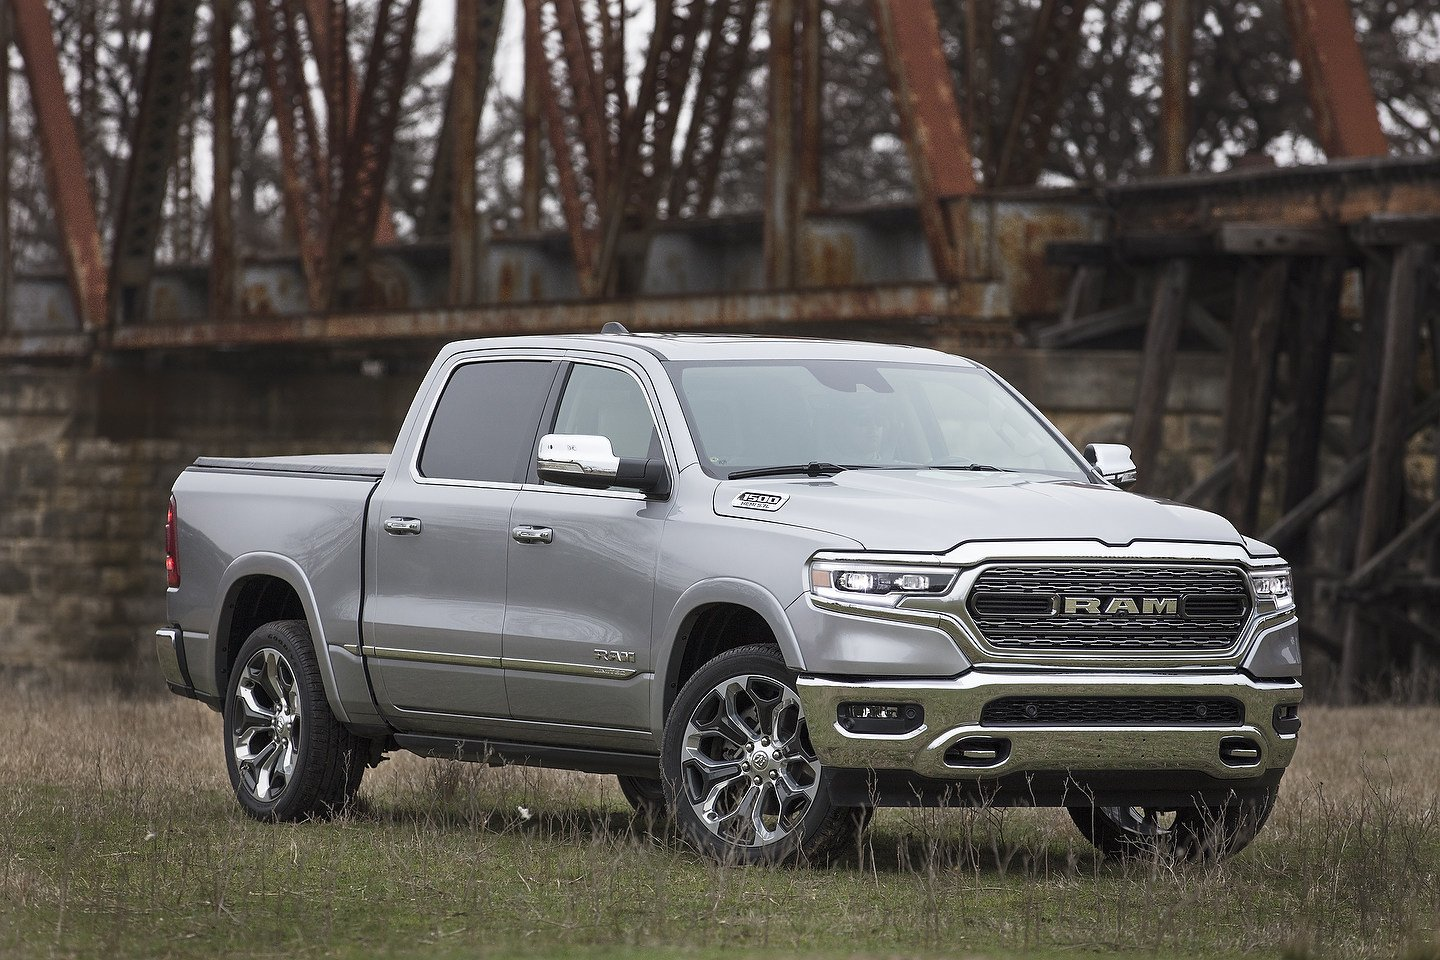 Best-selling cars in Canada - FCA